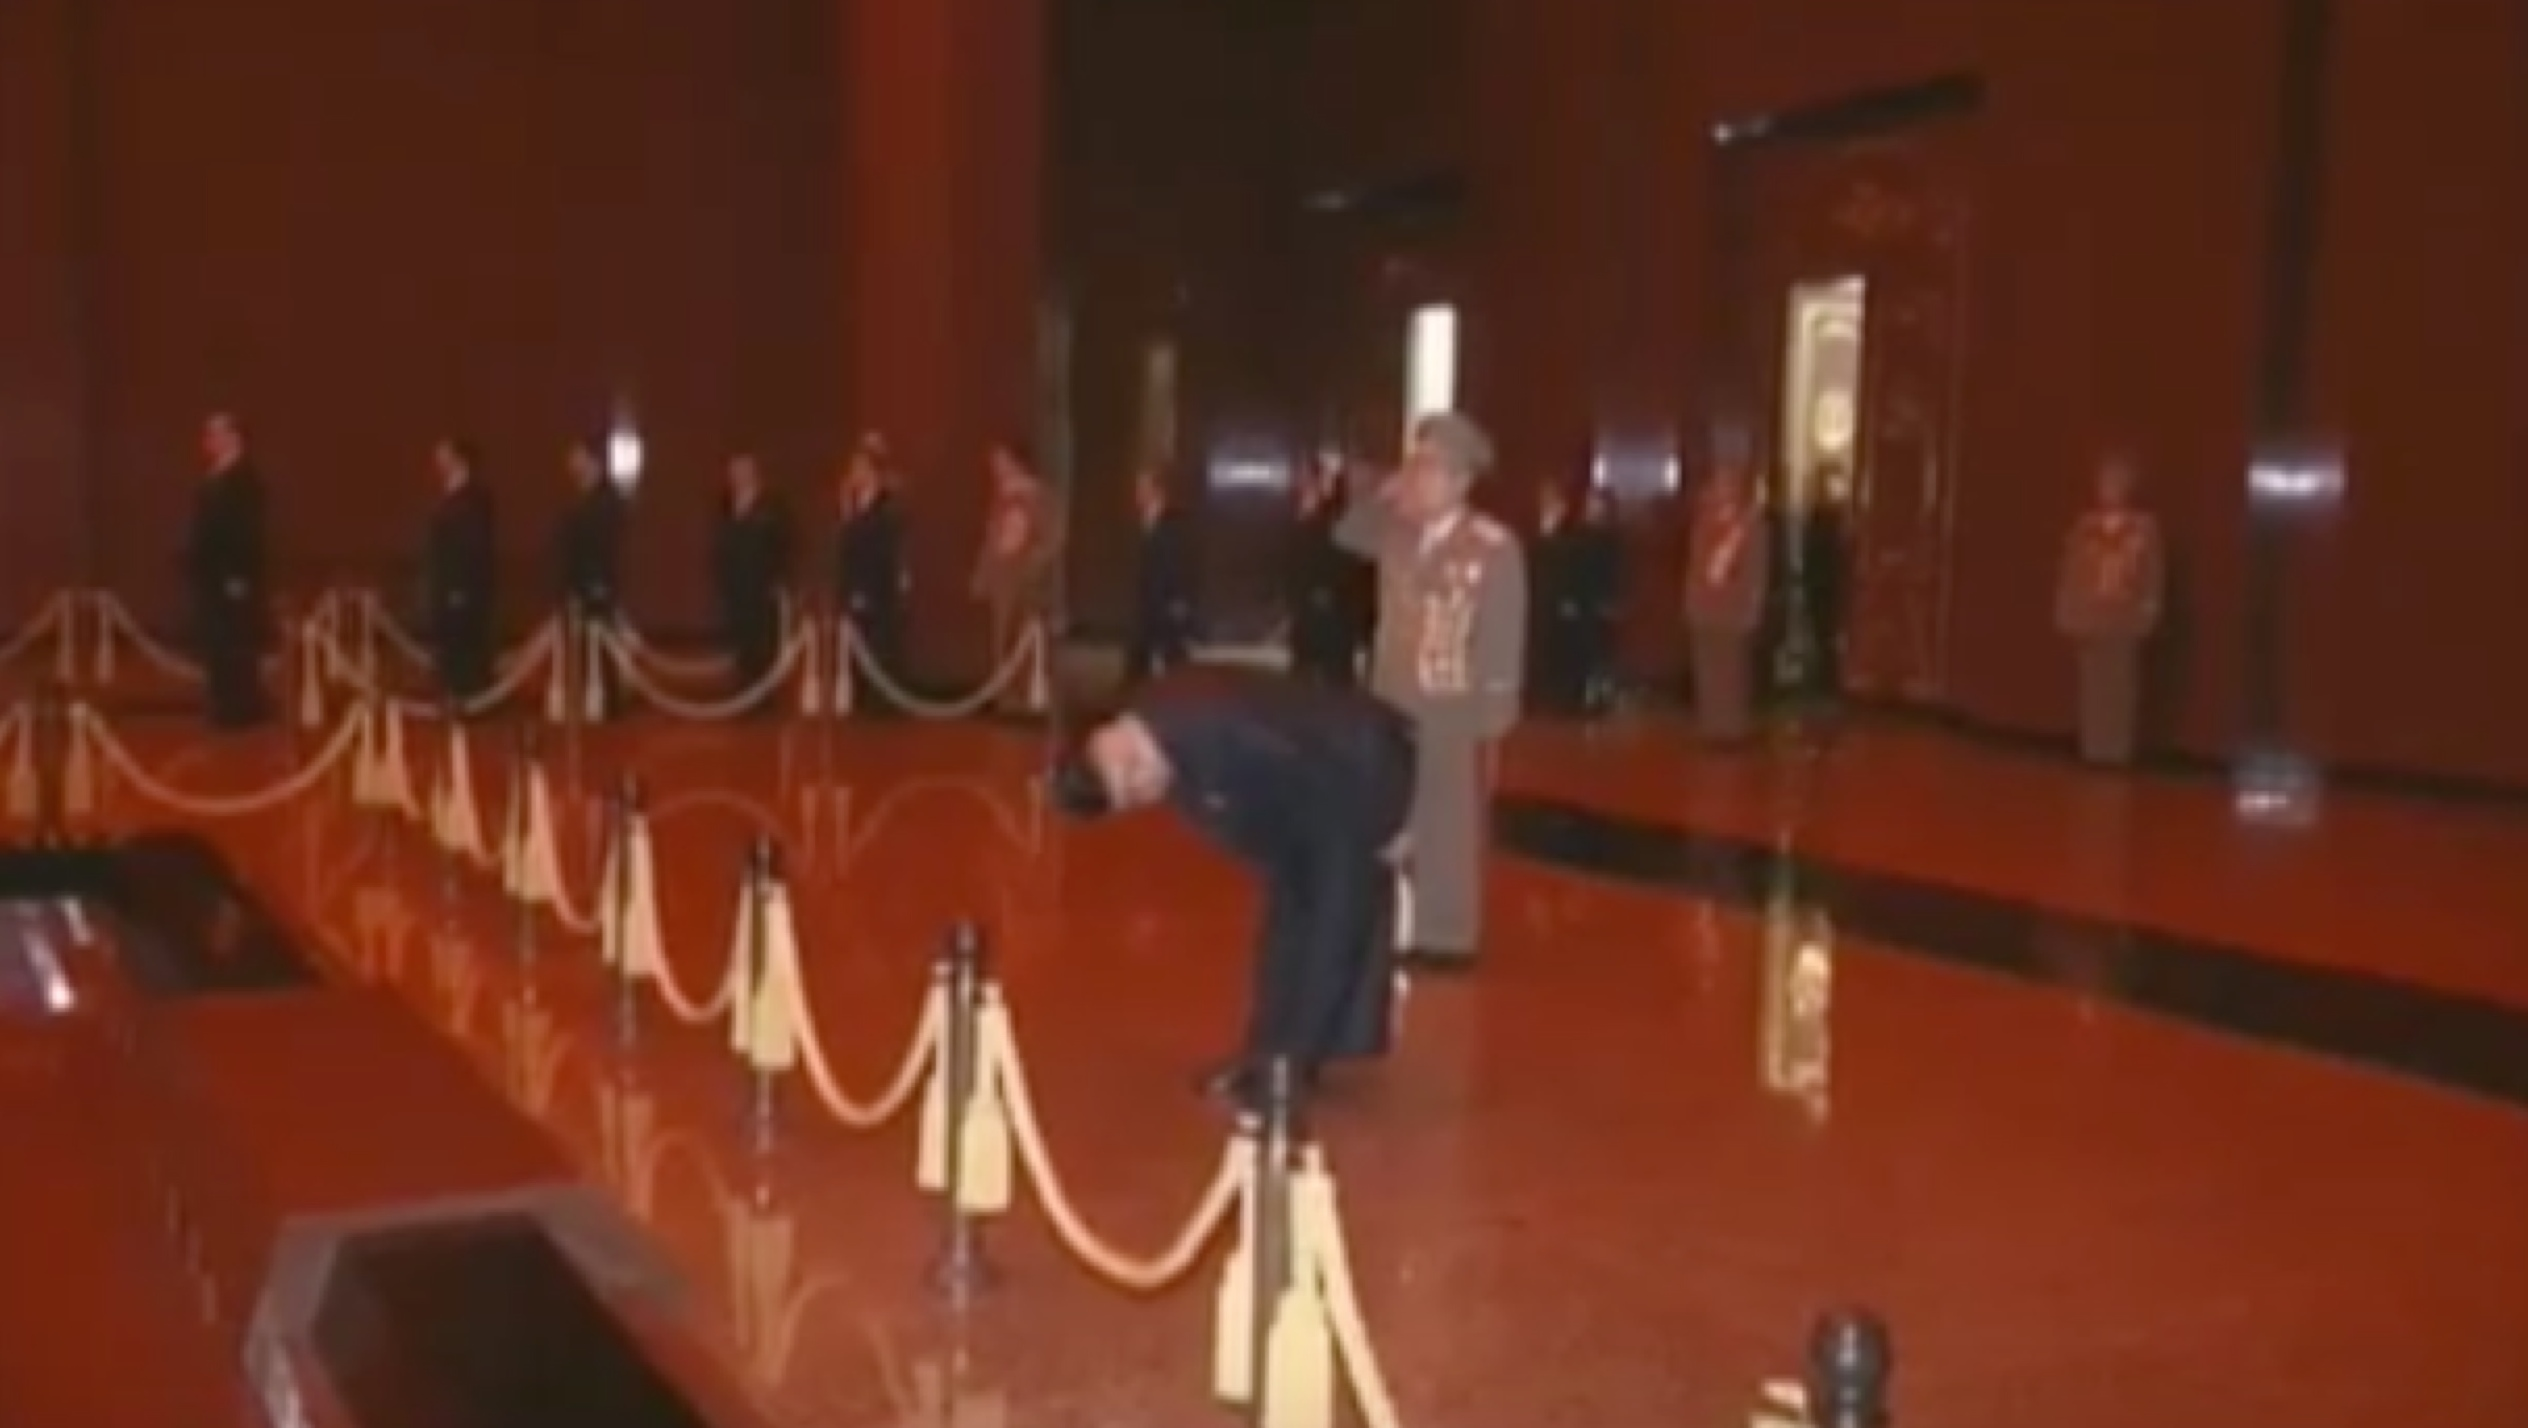 Kim Jong Un bows in front of the preserved remains of his father, late DPRK leader Kim Jong Il, on February 16, 2017 (Photo: Korean Central Television).